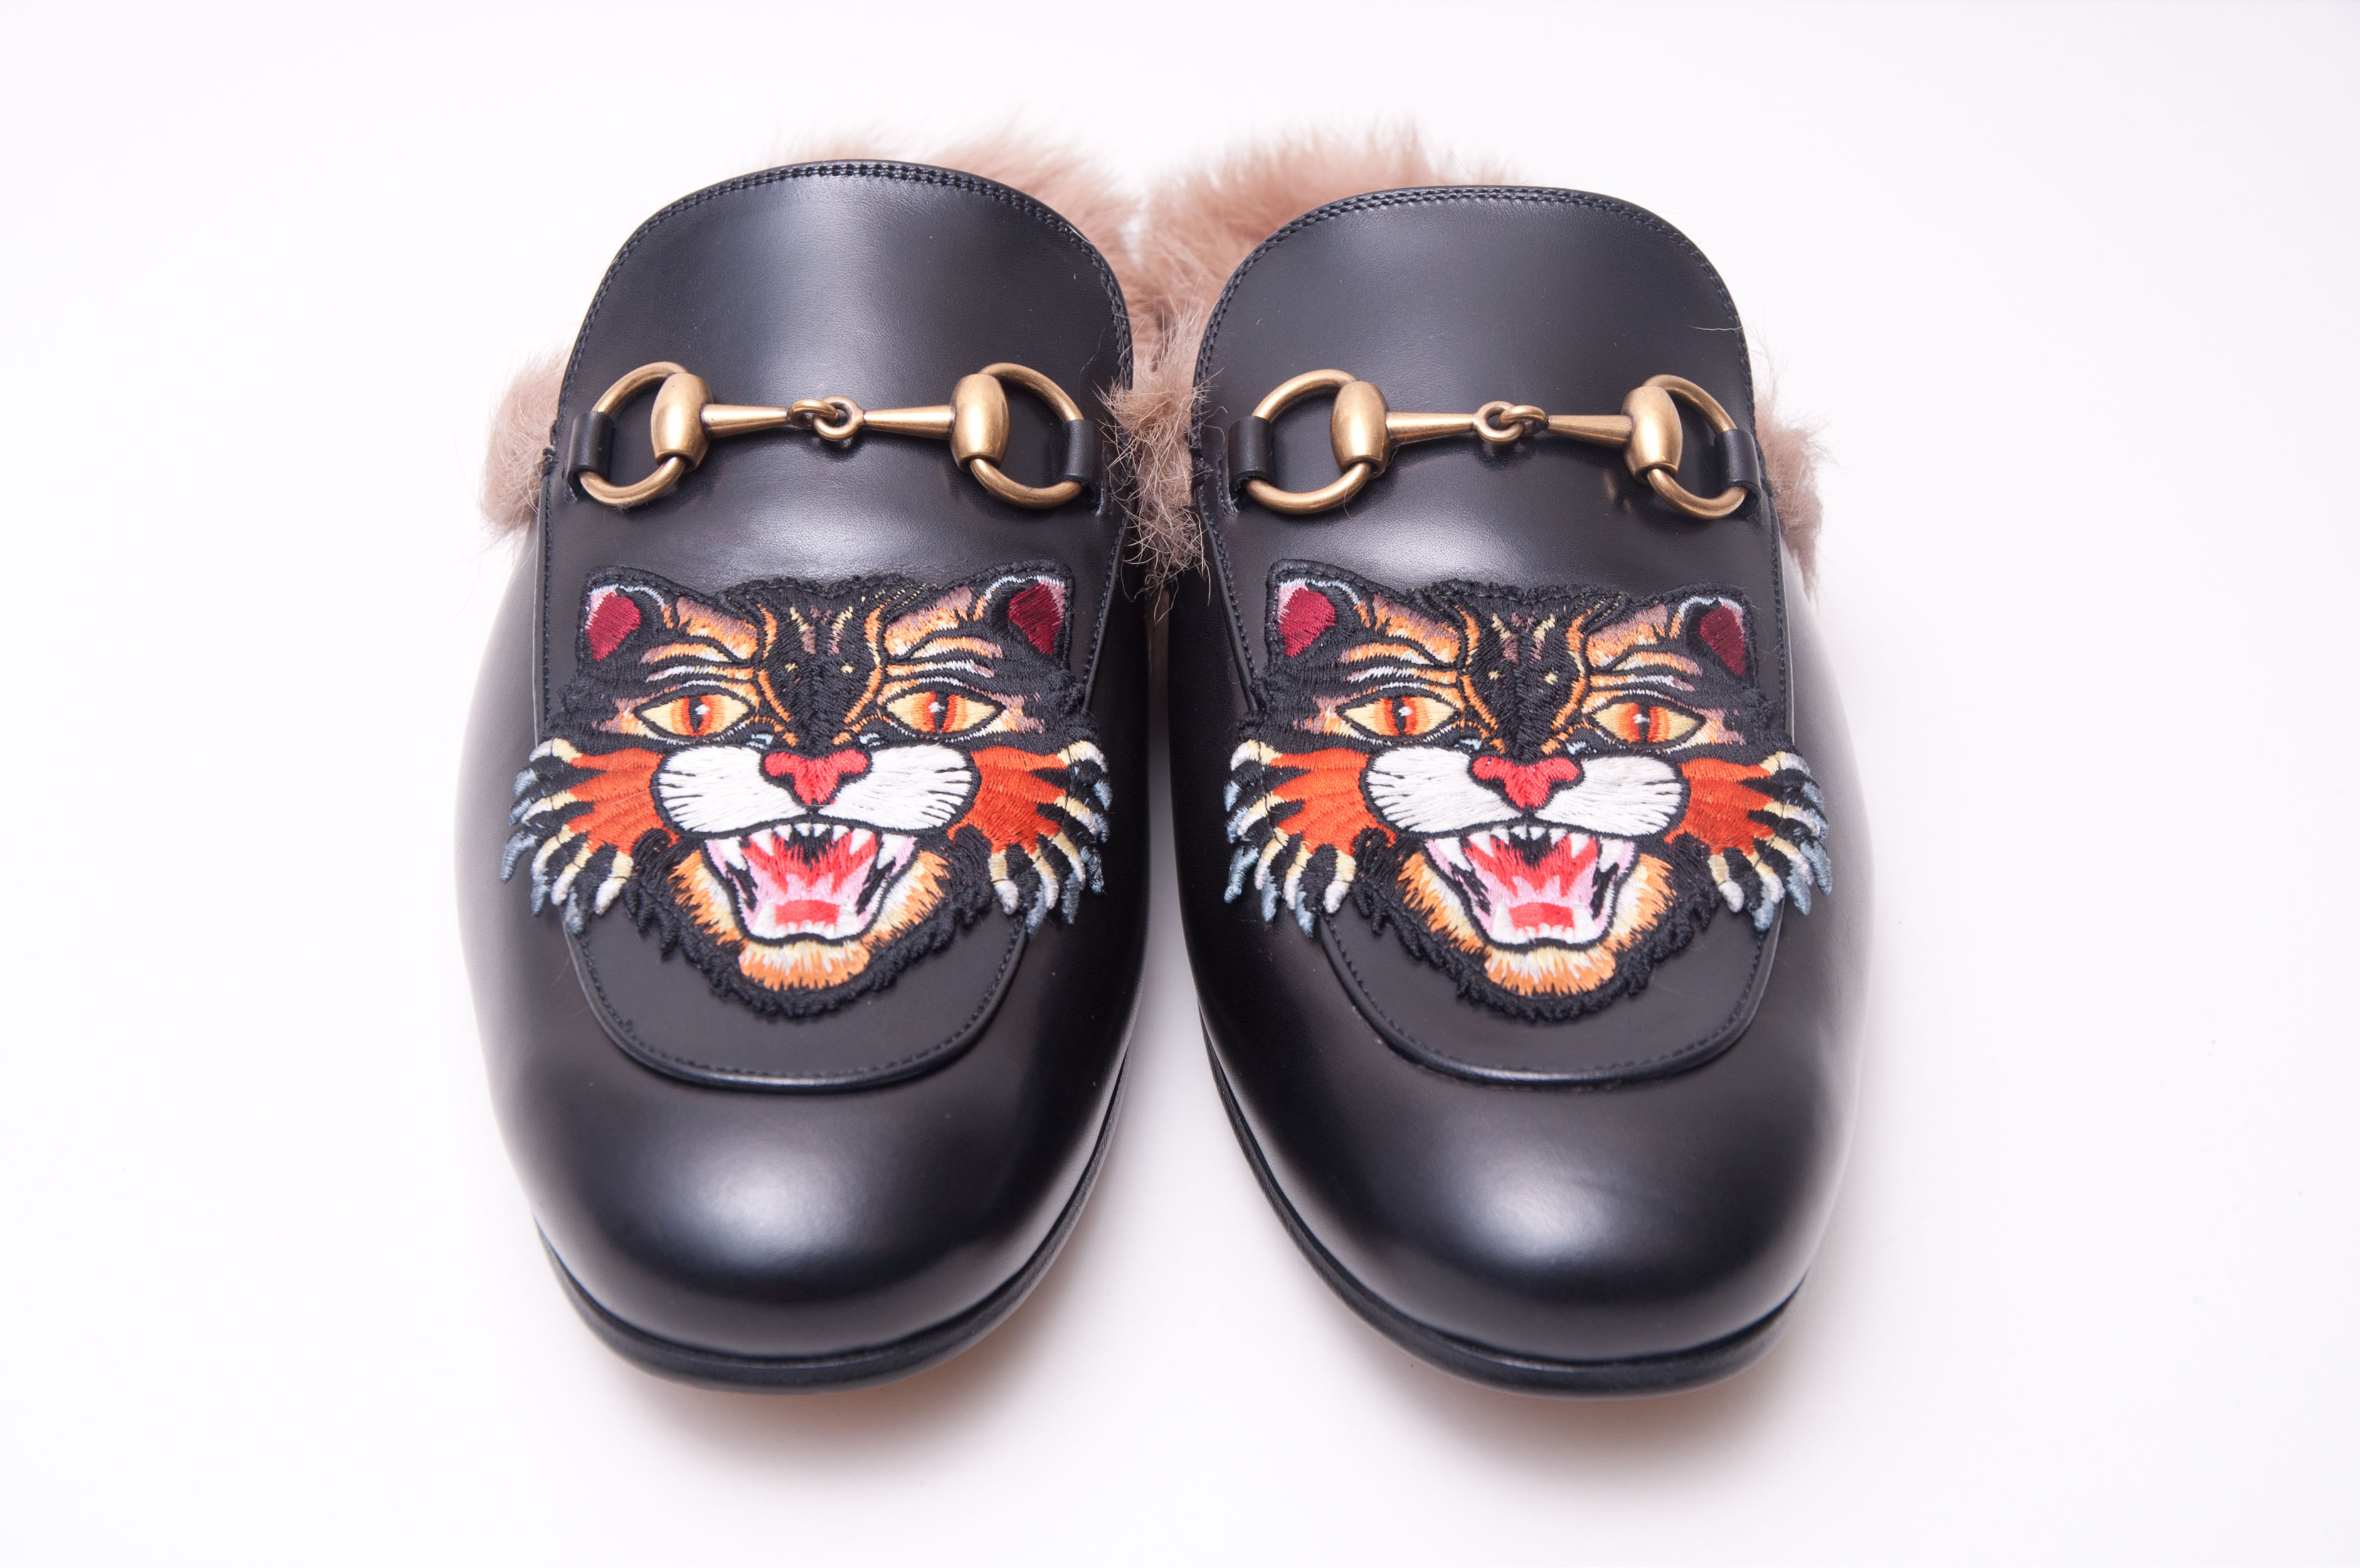 a94bed7f9bd Gucci 1050  Black Leather Princetown Slipper With Angry Cat Applique Size 9  - Sandals for Sale - Grailed